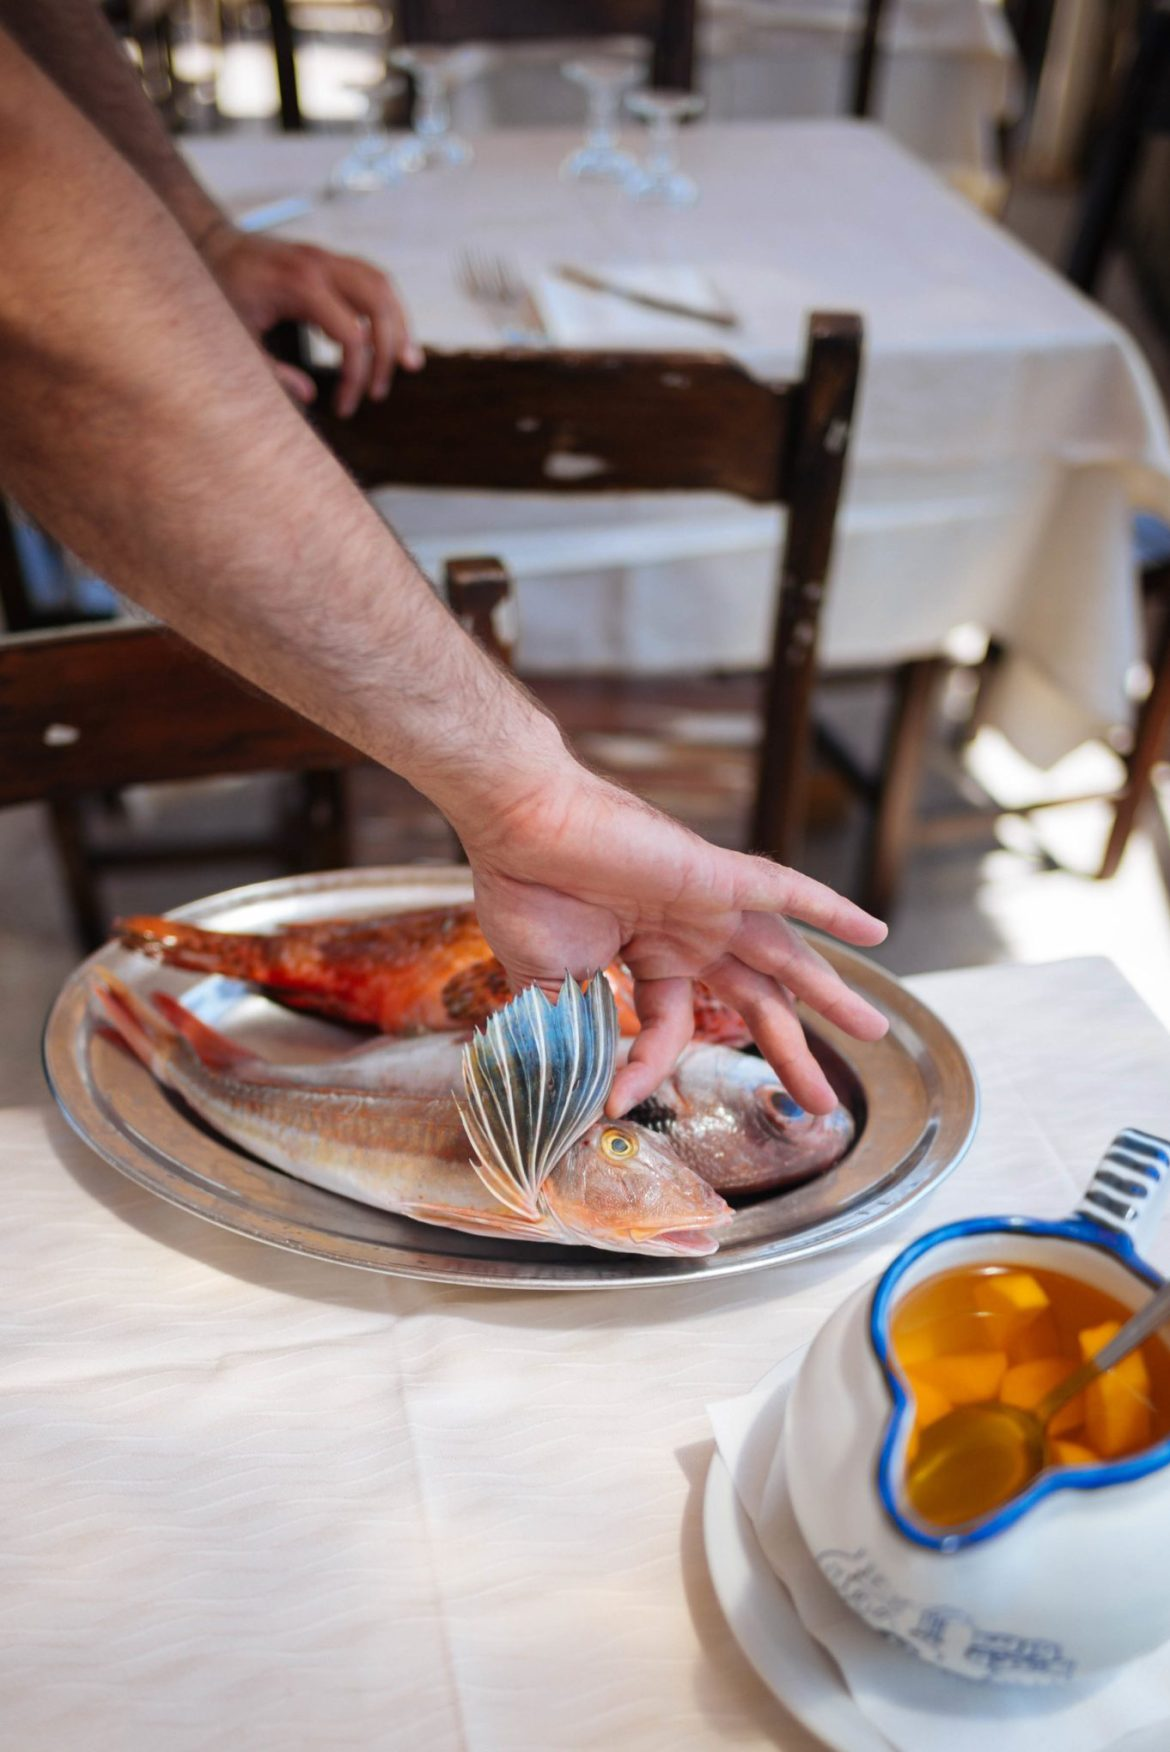 A waiter in Ischia, Italy shows us the different fish on the fish-of-the-day platter. The fish is caught that morning and can be prepared various ways, like the best fish pasta recipe that we've perfected for easy fish dinners. #pasta #fish #italy #recipe